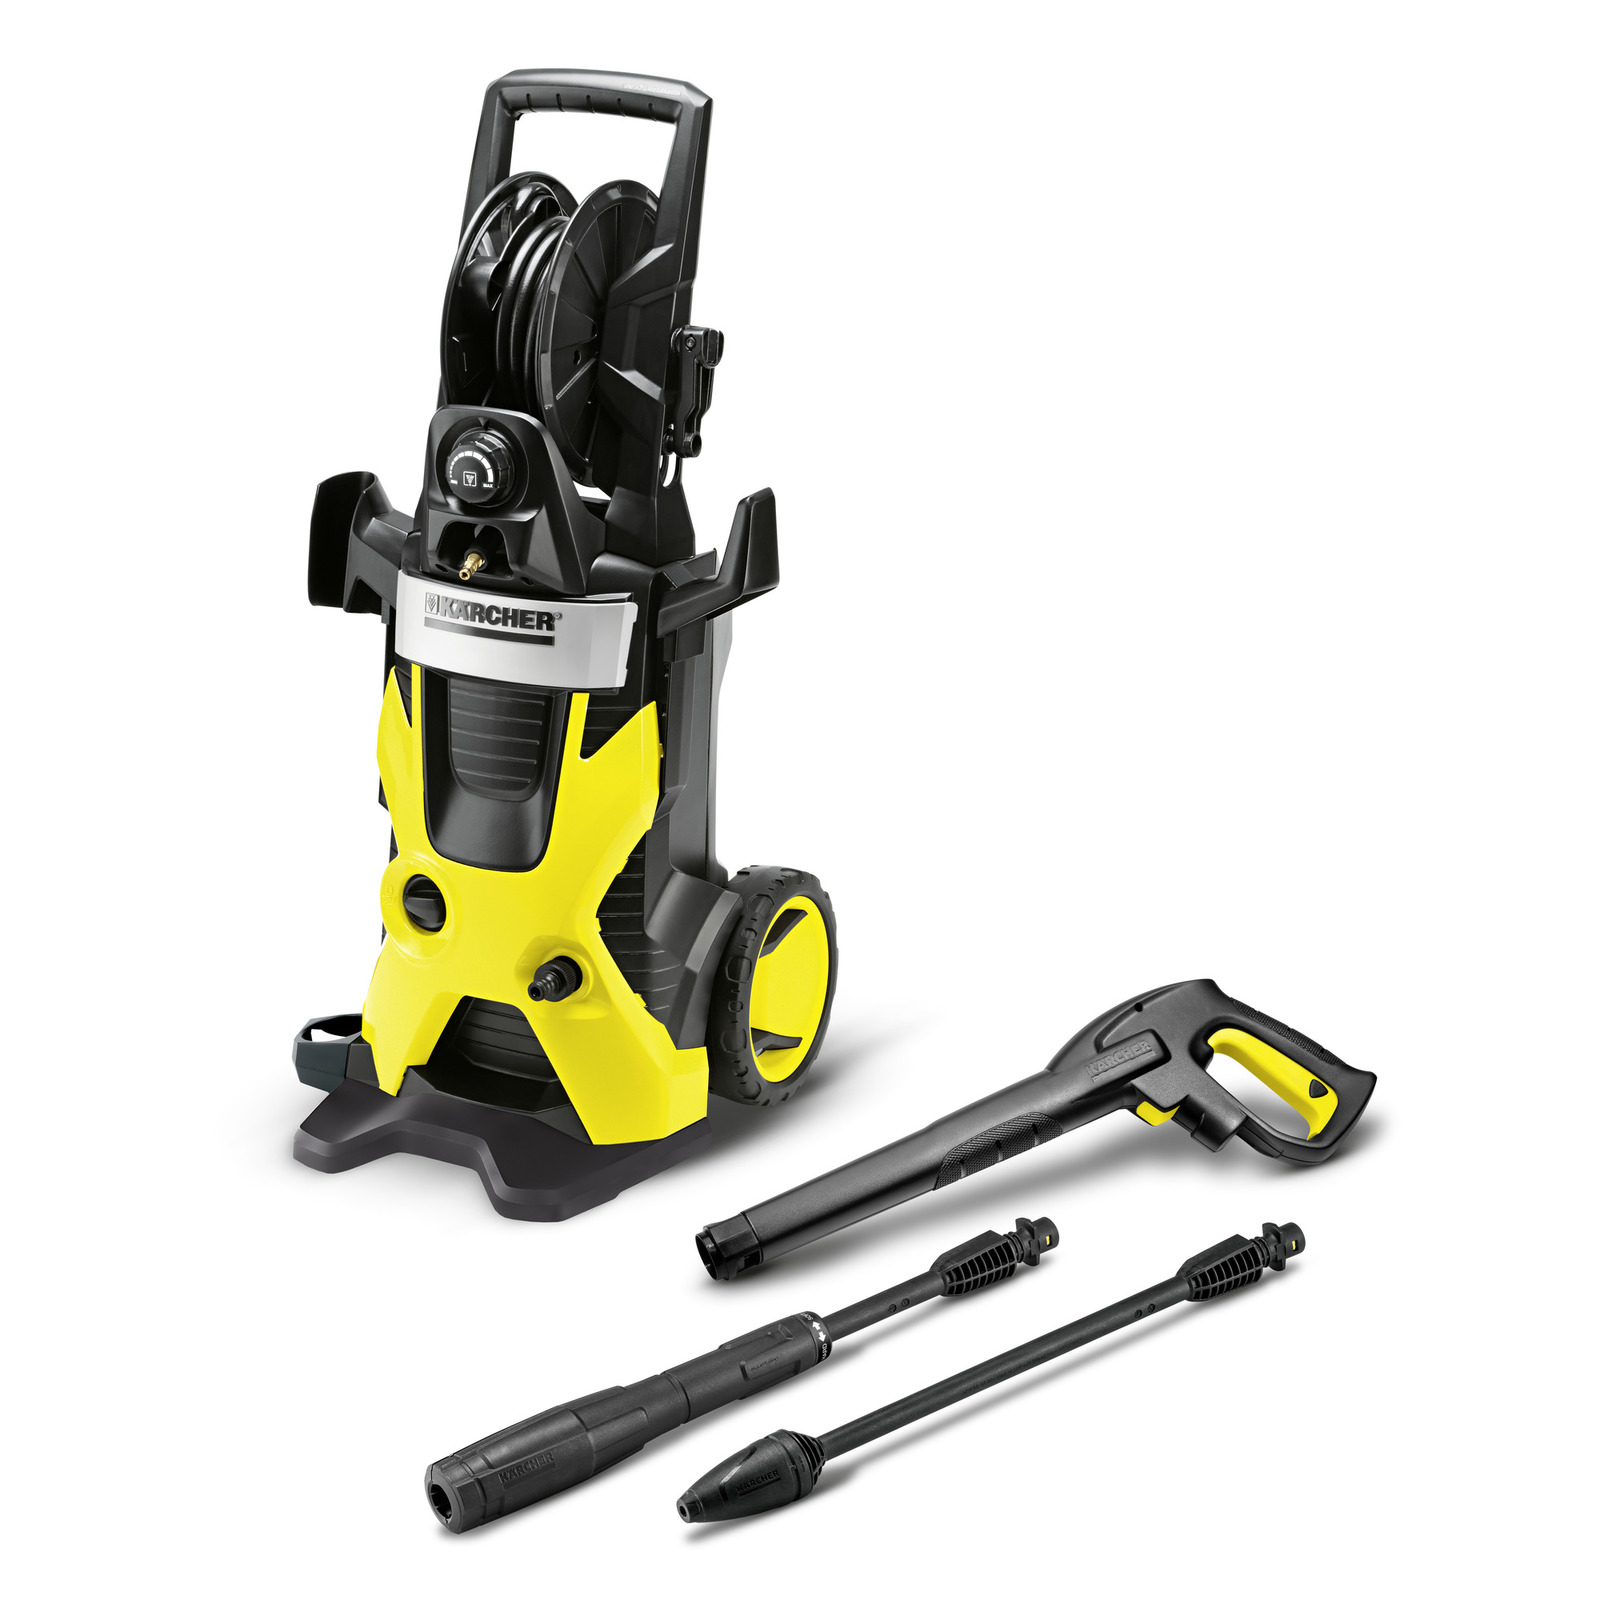 Bra K5 Premium Electric Pressure Washer, 2000 PSI, 1.603-361.0 AX-27